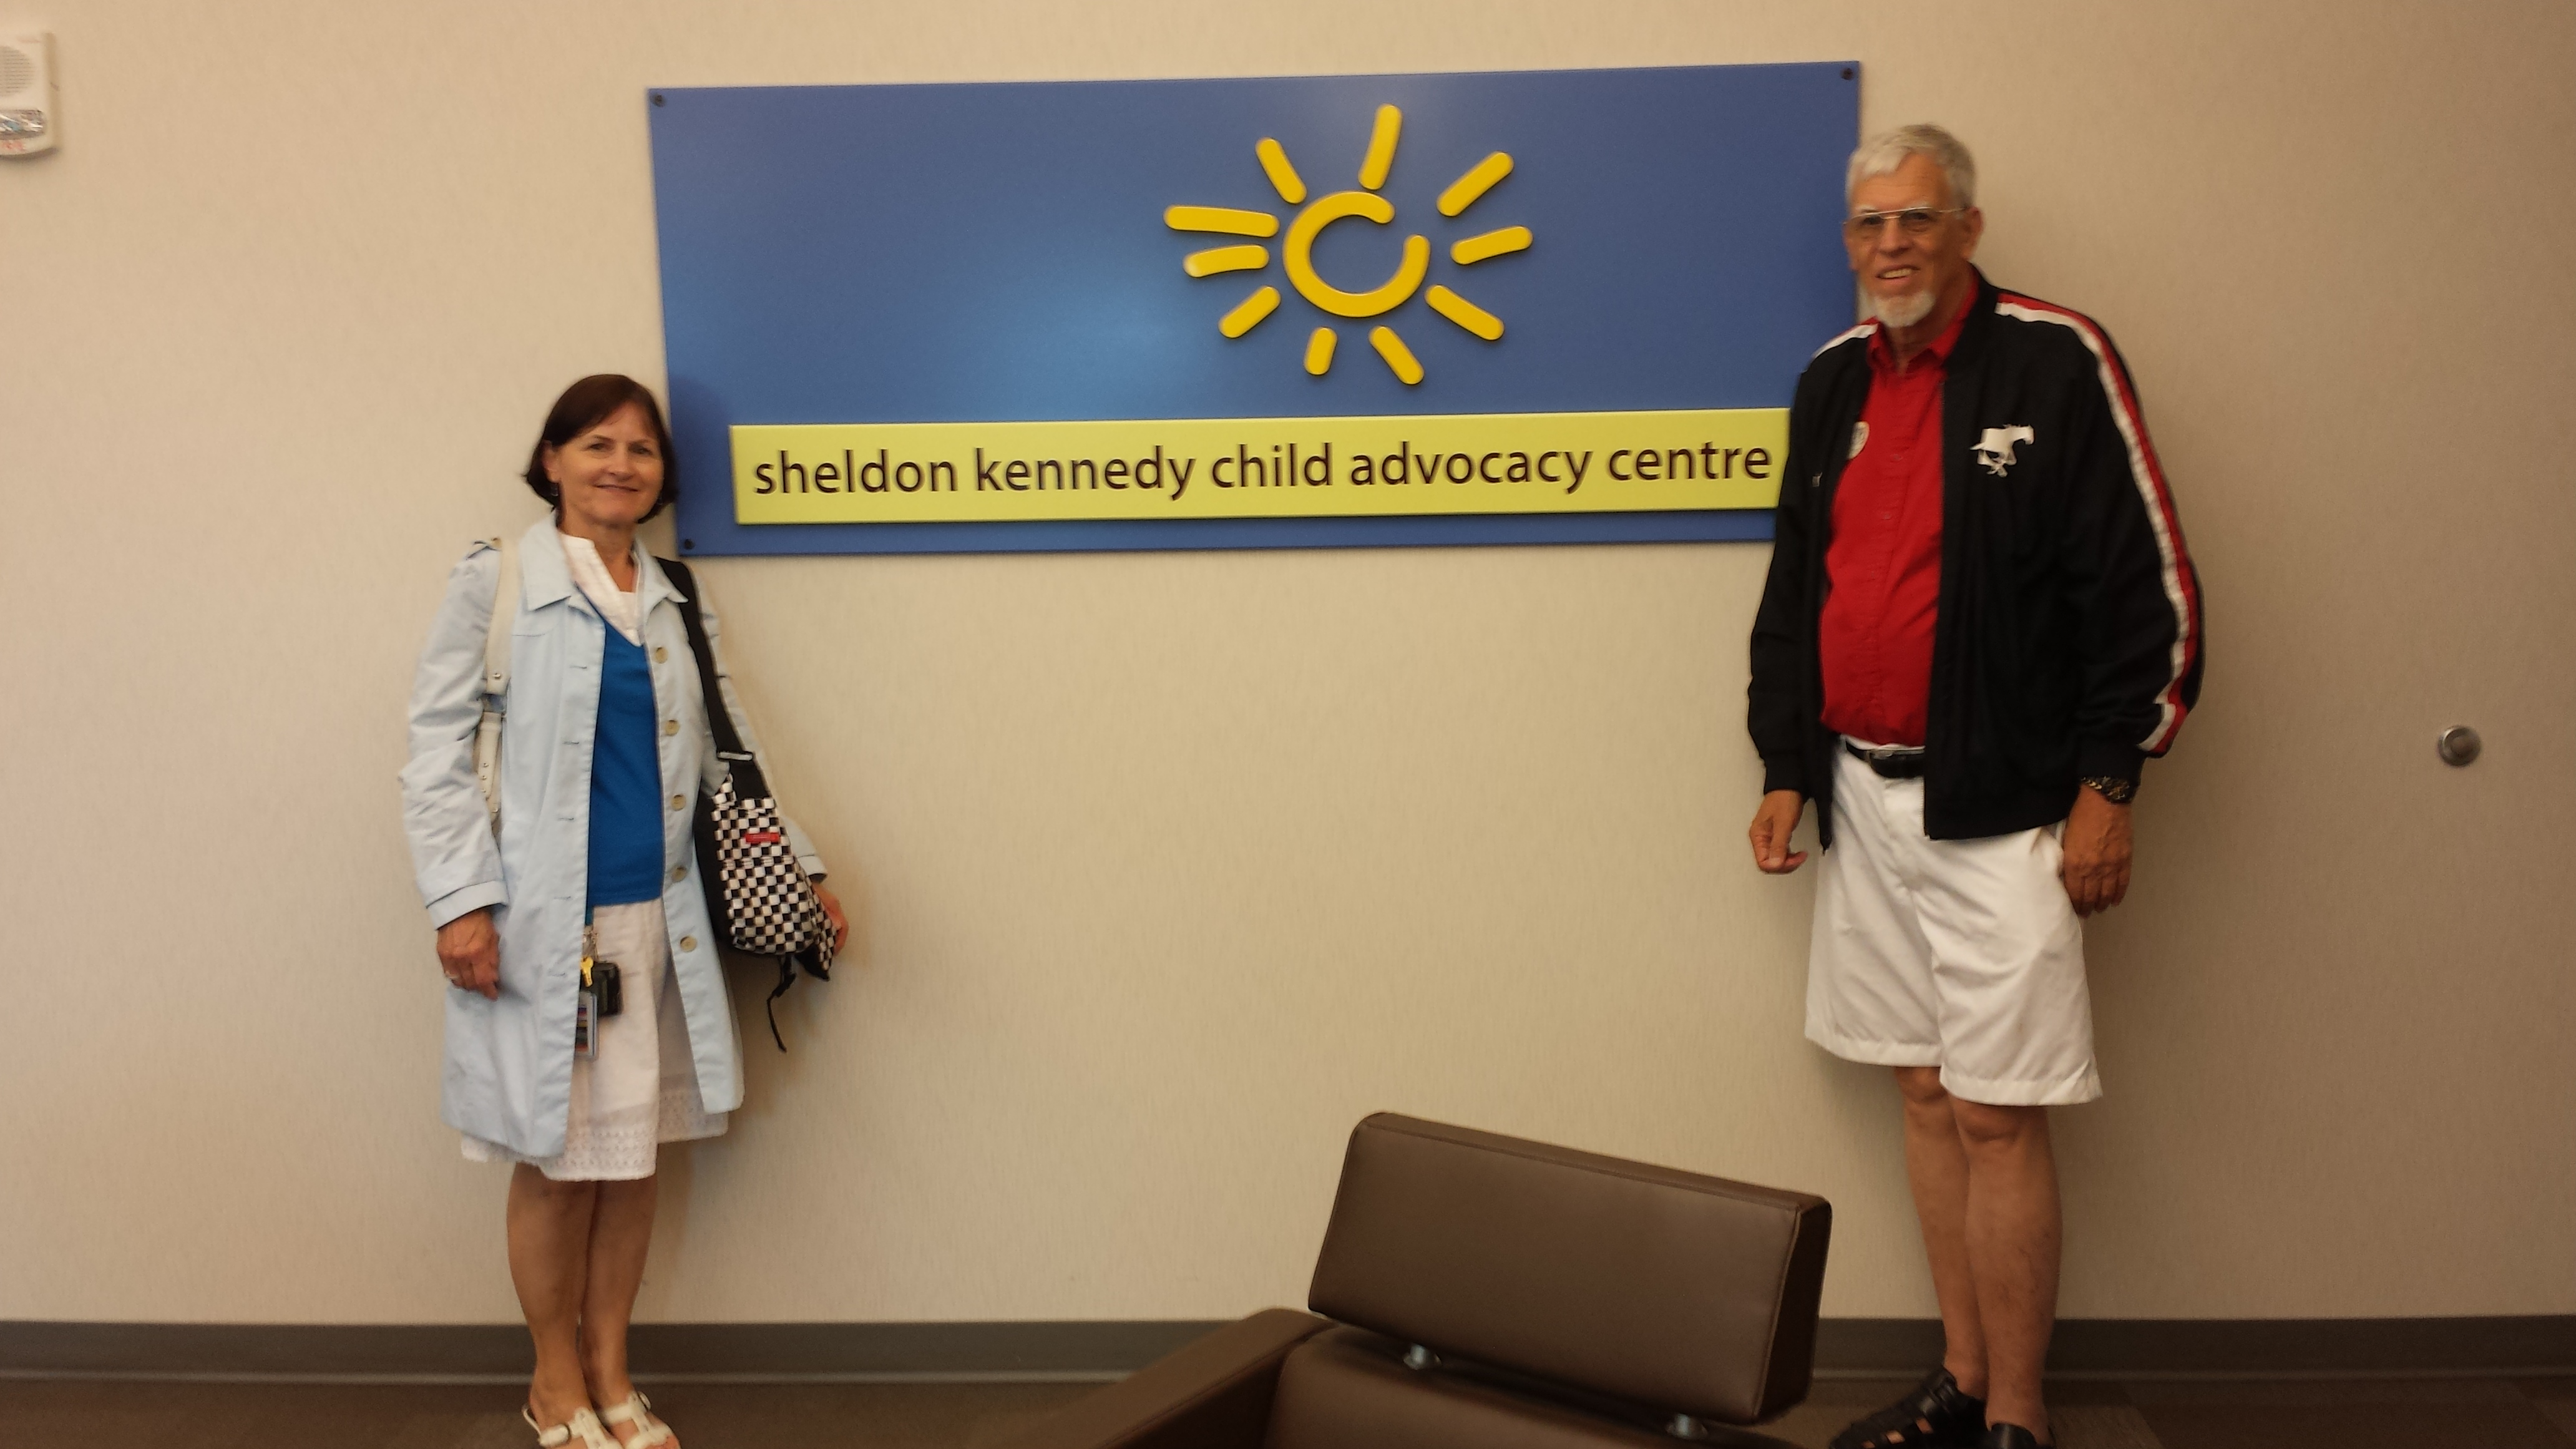 lions district governor don edy and partner lynn at sheldon kennedy child advocacy centre 20150629_135734